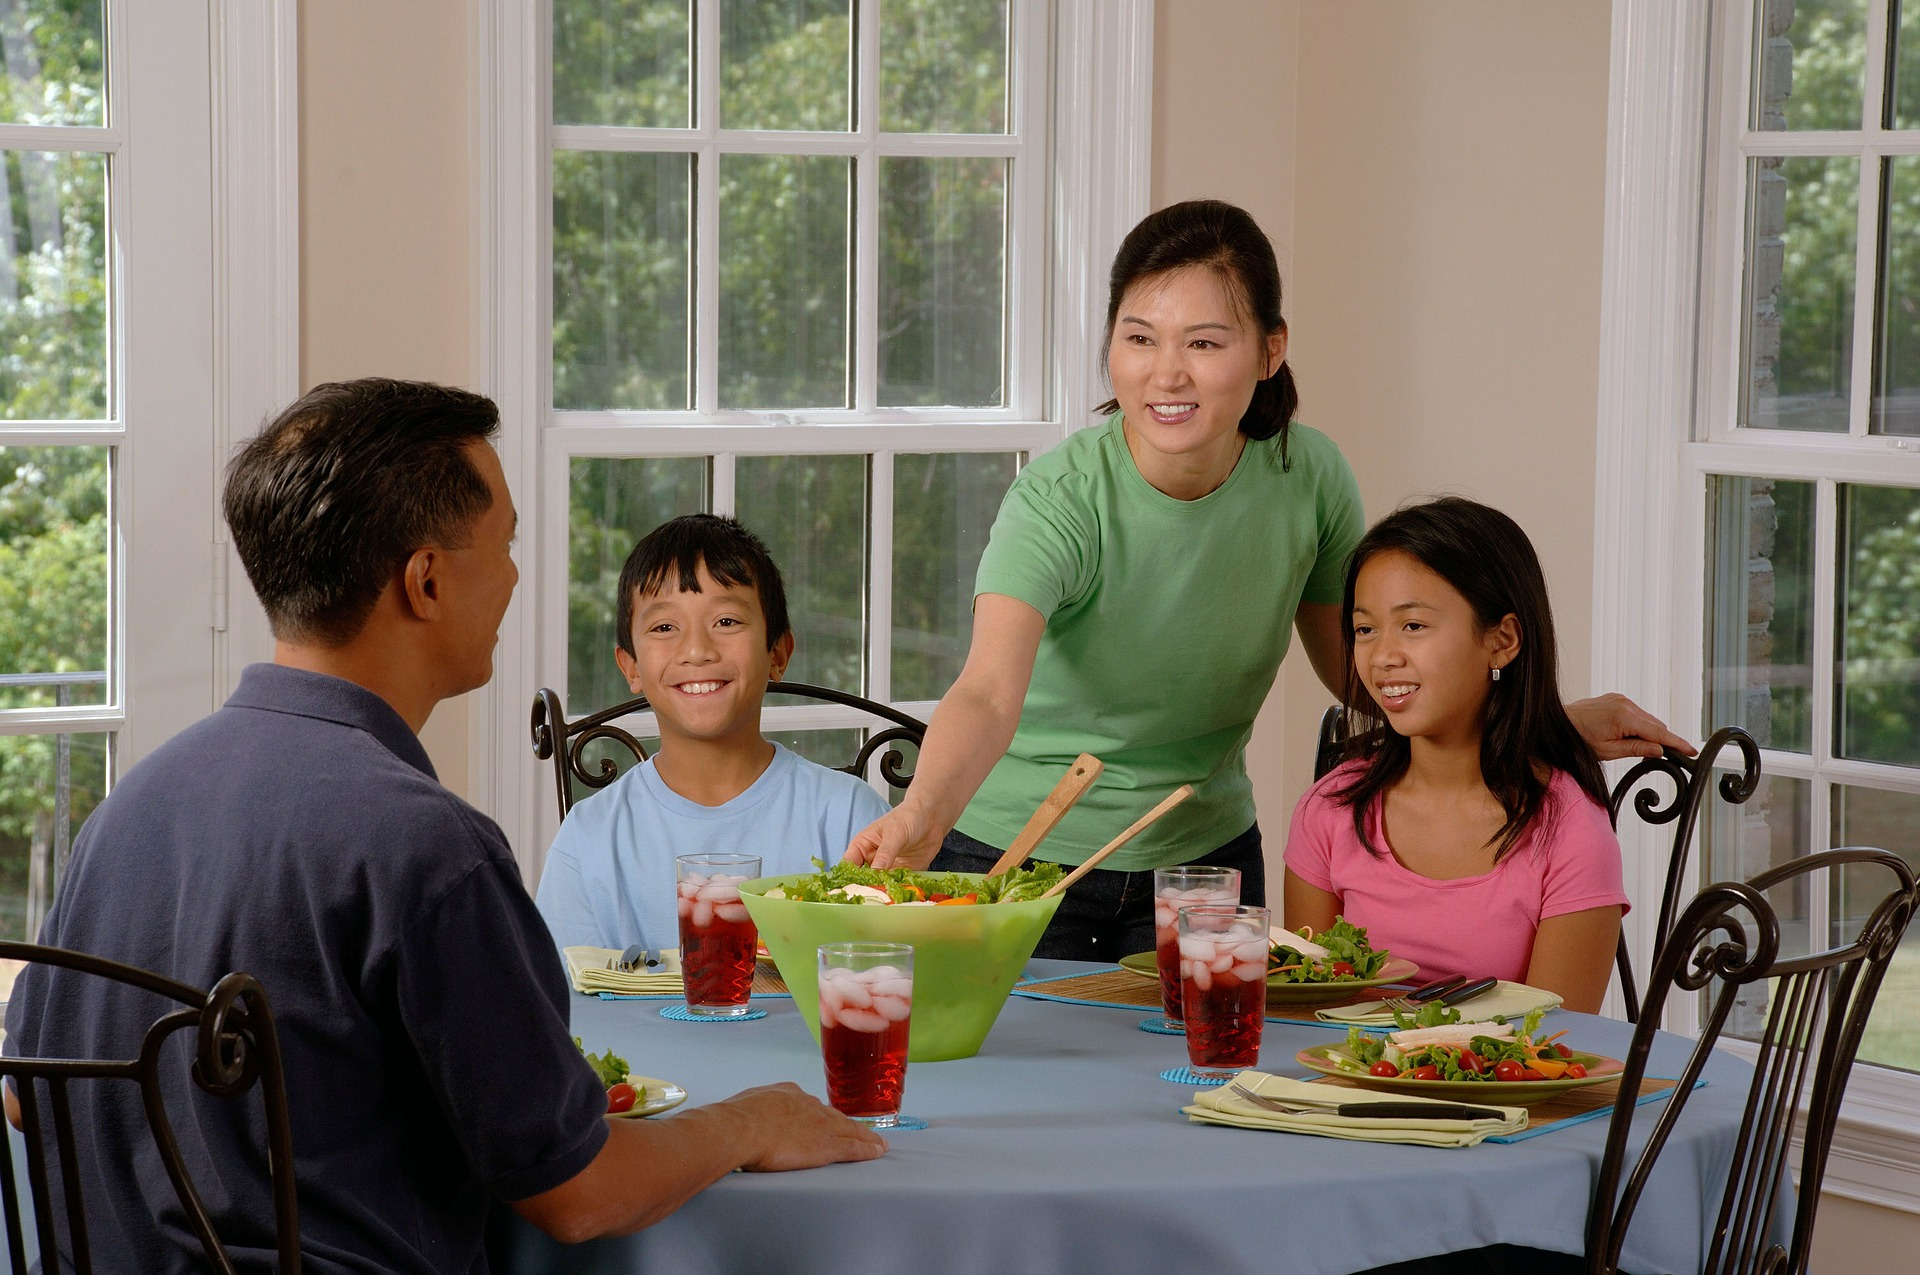 family-eating-at-the-table (Pixabay 619142_1920).jpg